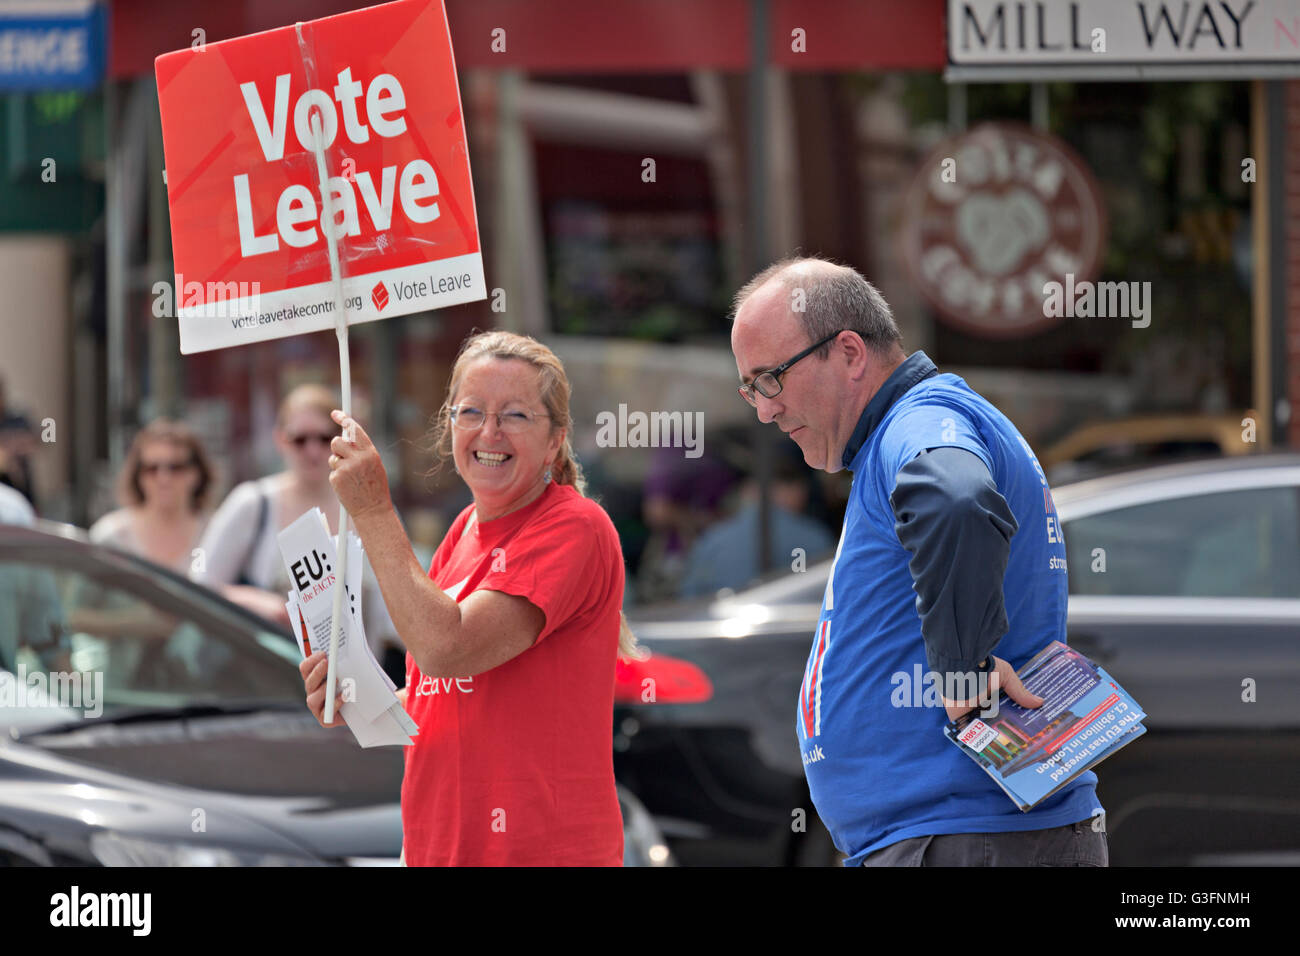 London, UK. 11 June 2016. Pro and Con Brexit Campaigners meet at Mill Hill World Village Market where the public - Stock Image